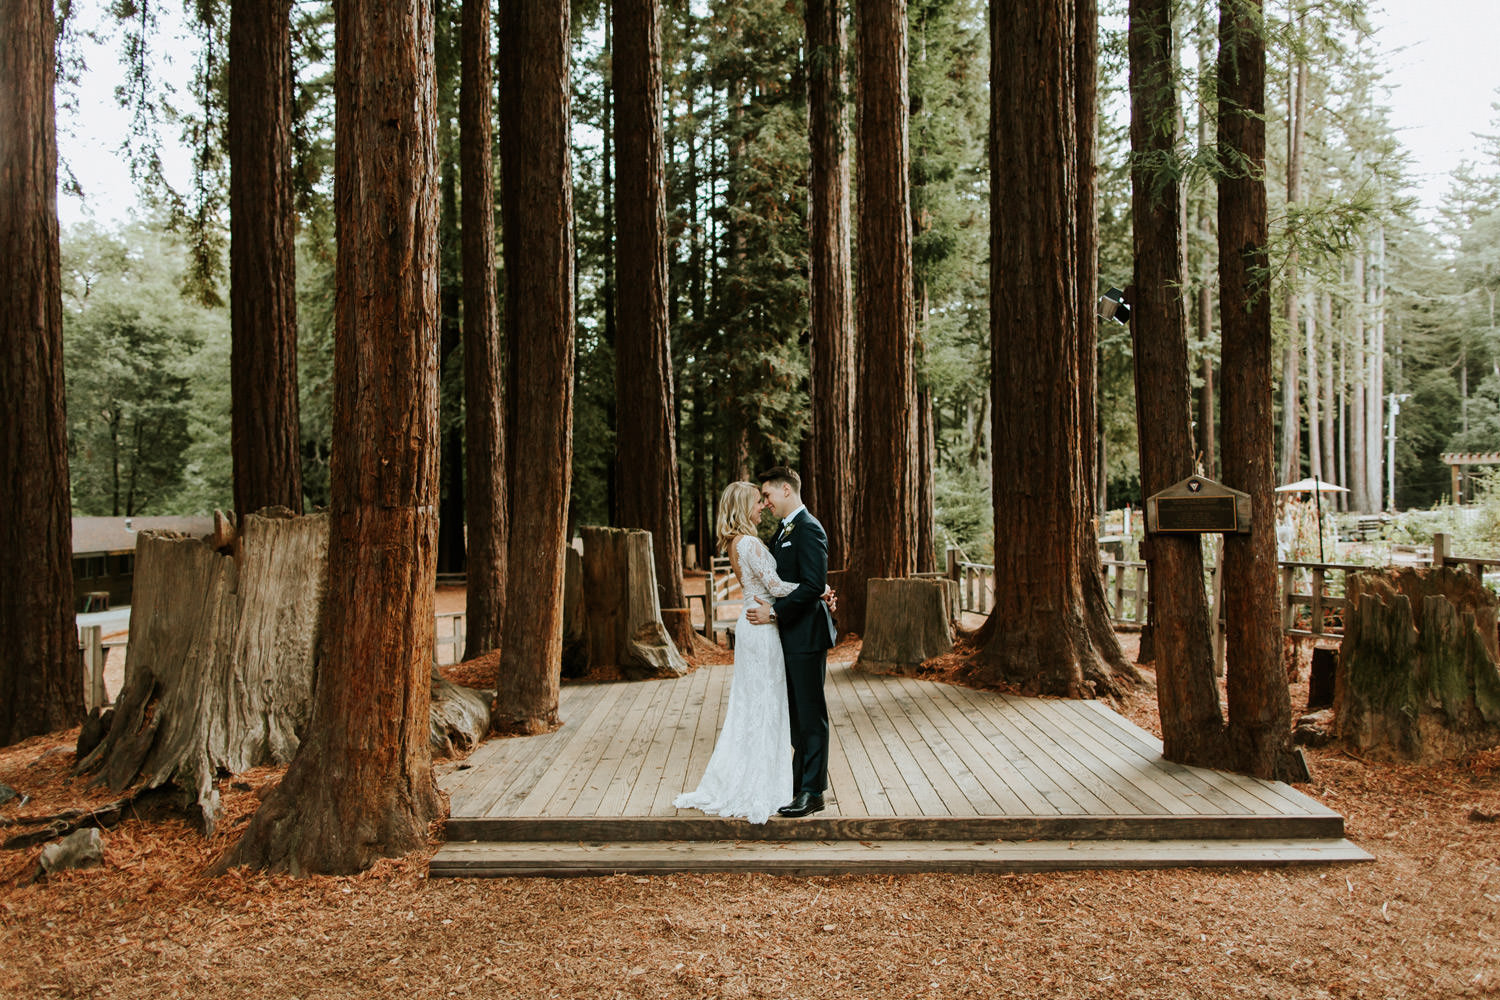 Bride and groom kiss at the chapel after the wedding at Camp Campbell in California